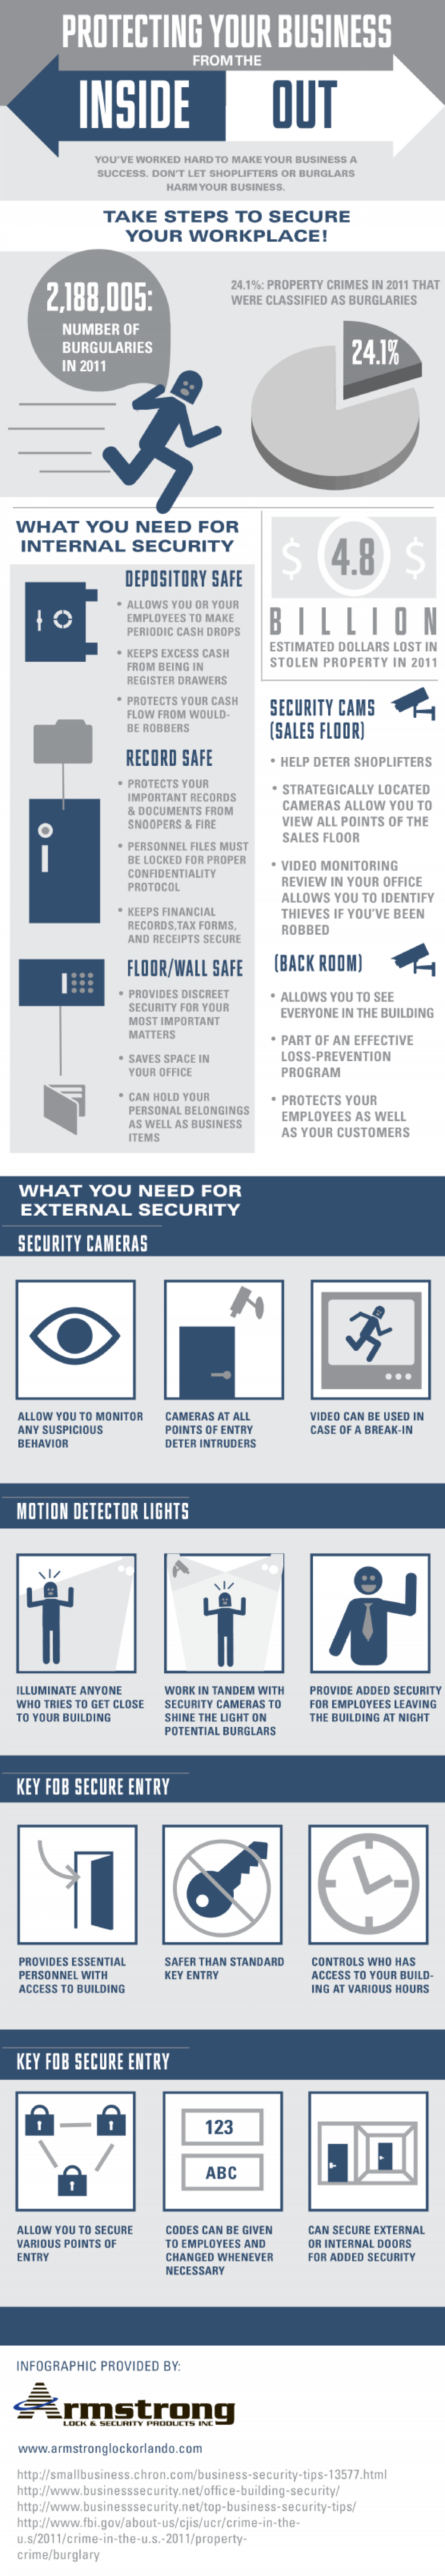 Protecting Your Business from the Inside Out Infographic